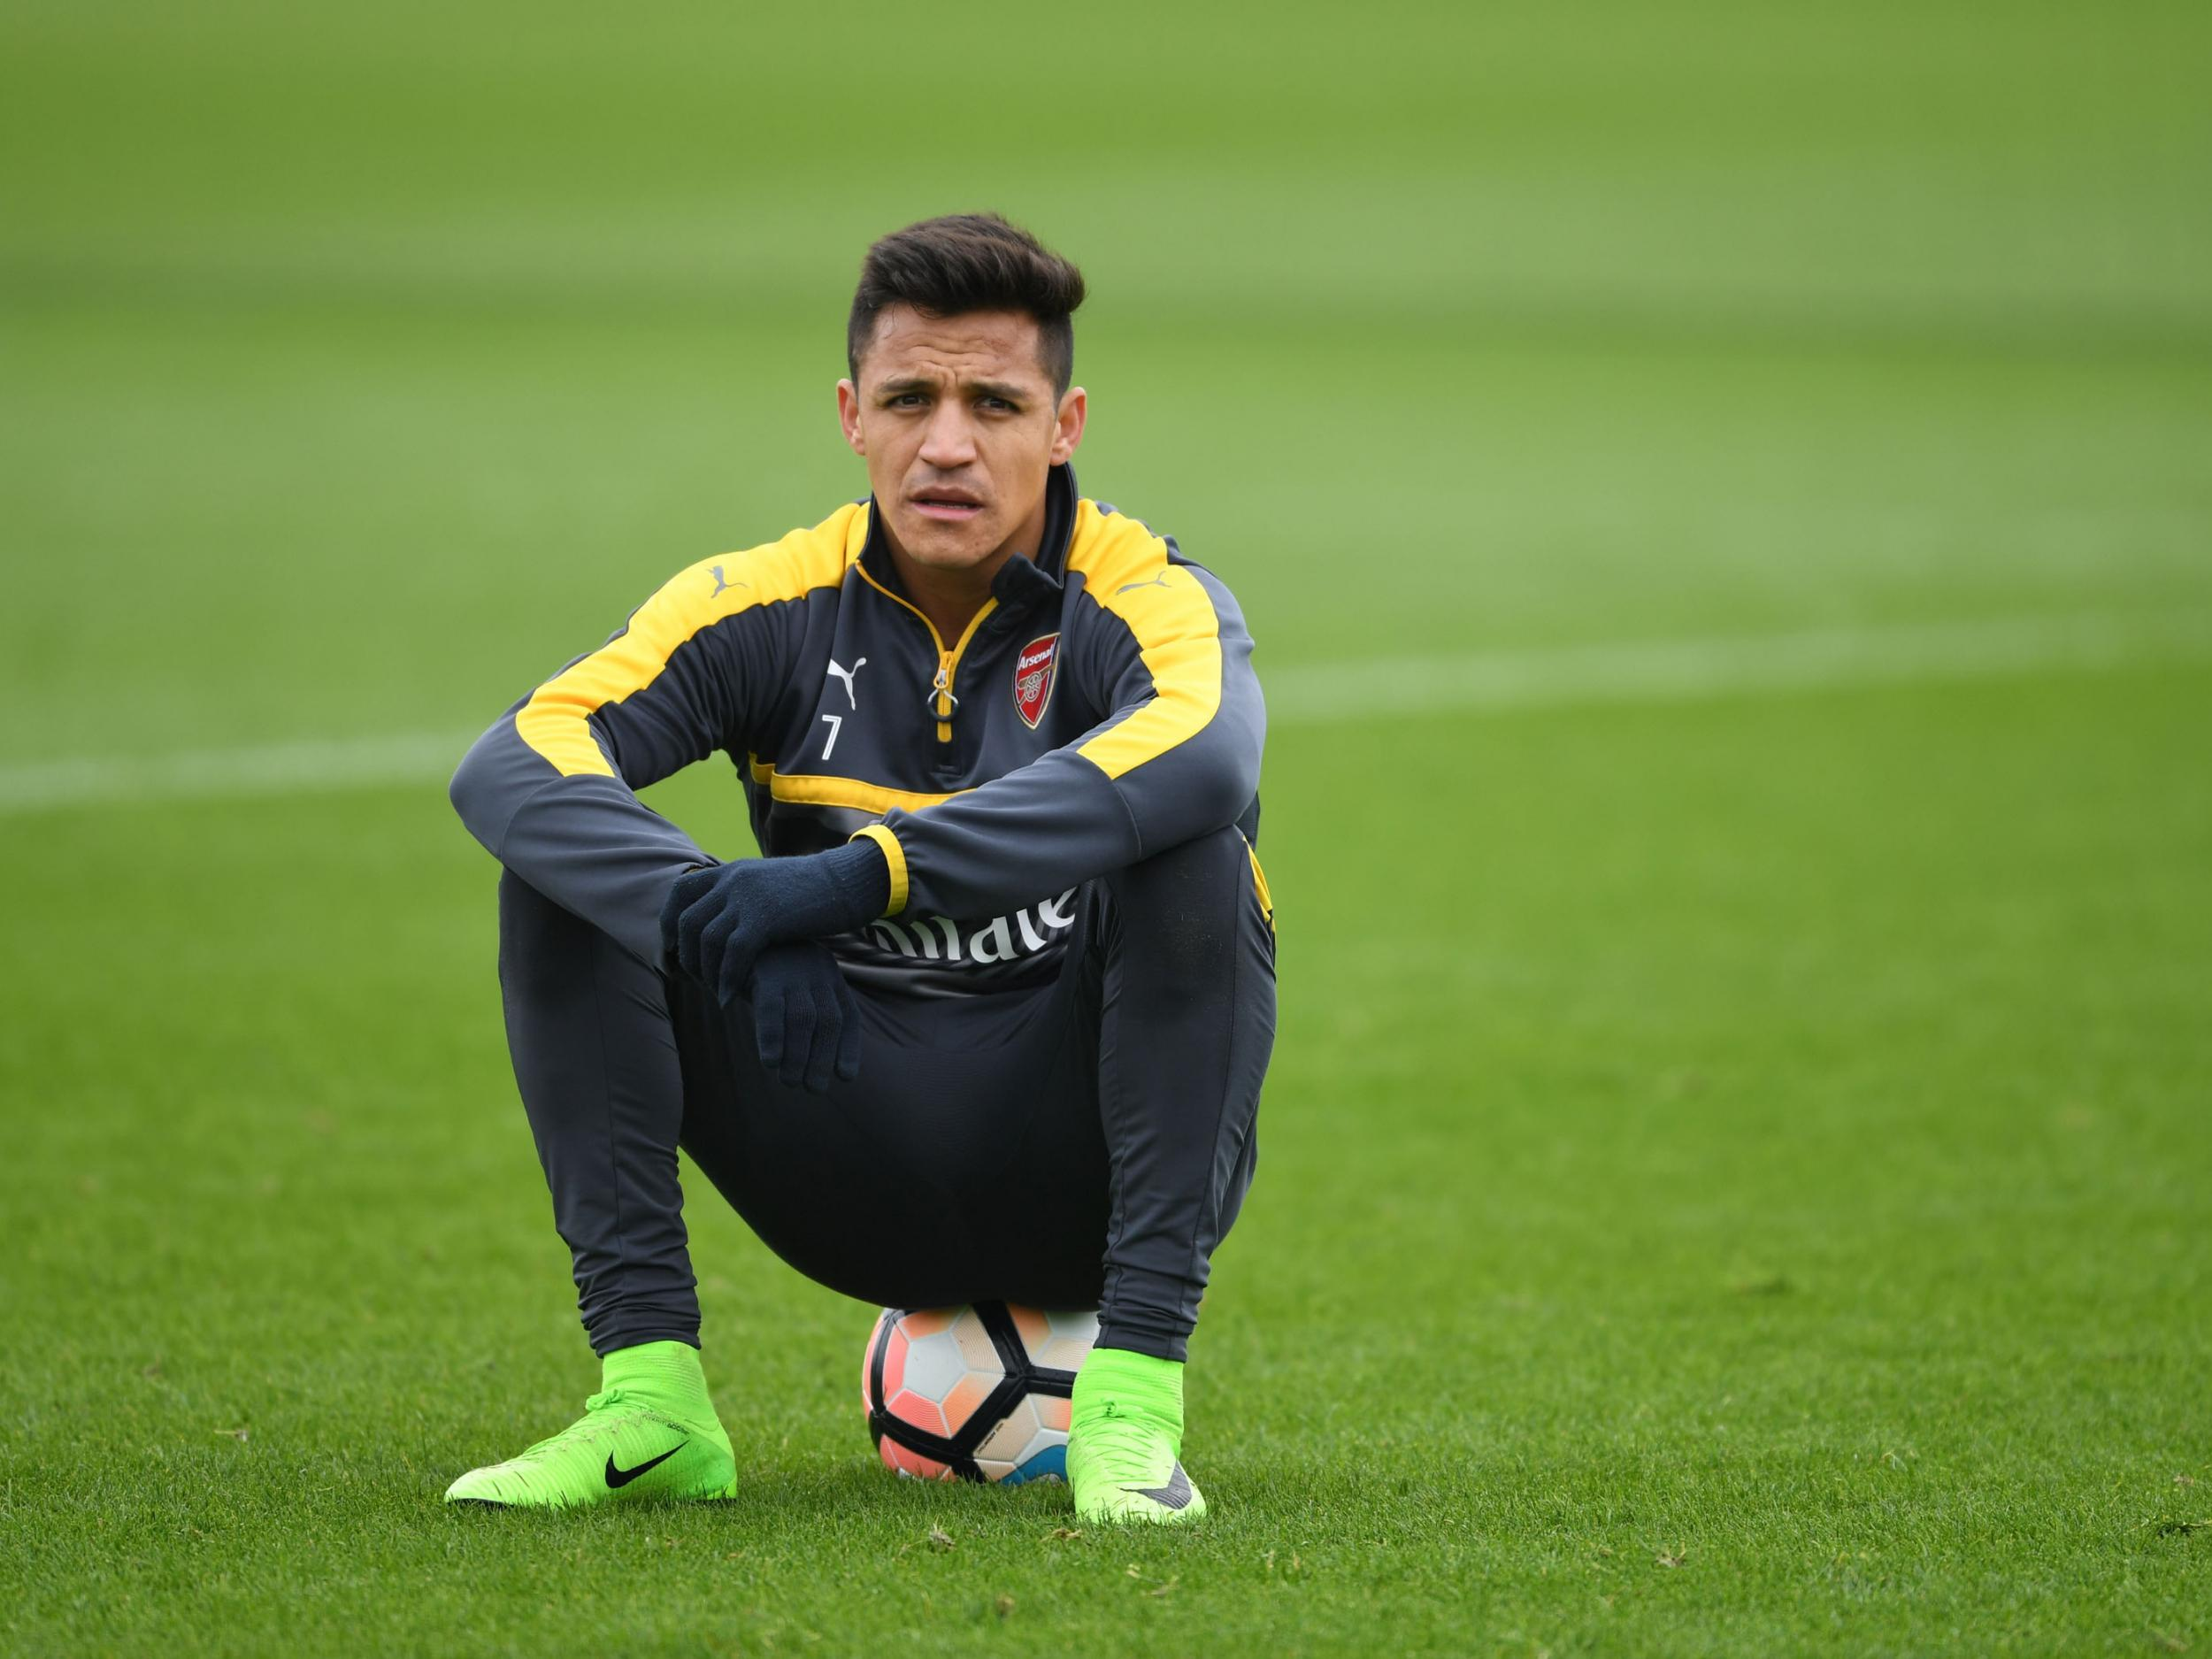 Arsenal should pay Alexis Sanchez whatever it takes to stop him joining Manchester City, says Ray Parlour